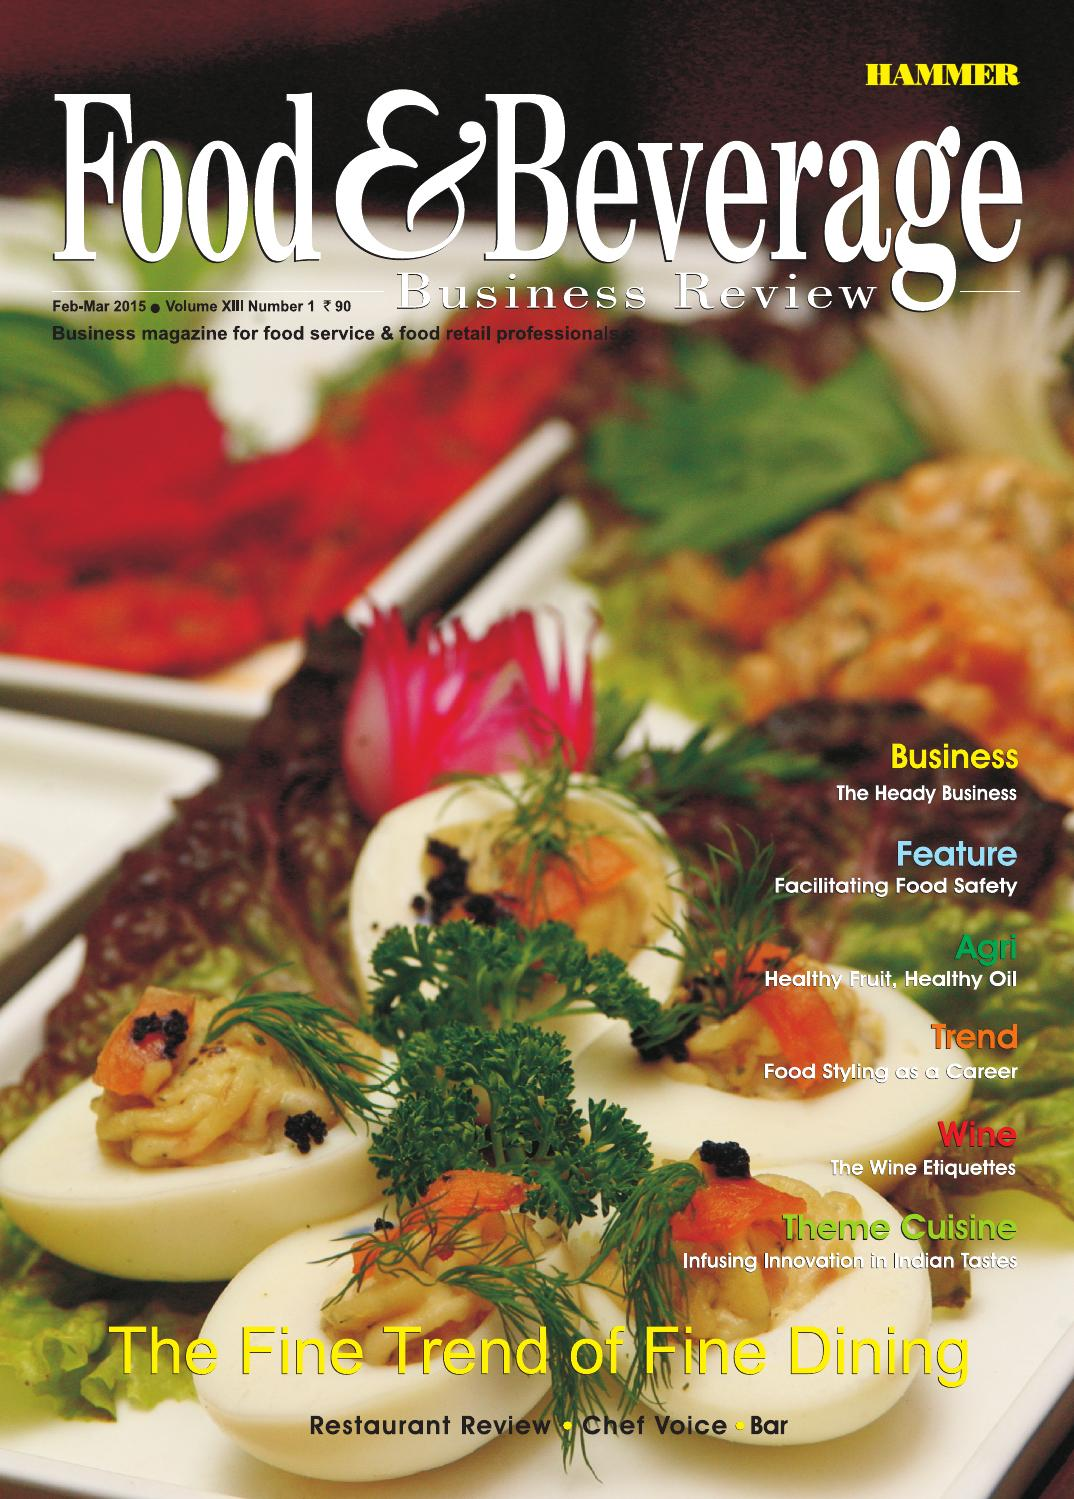 Food  Beverage Business Review FebMar 2015 by Food  Beverage Business Review  Issuu